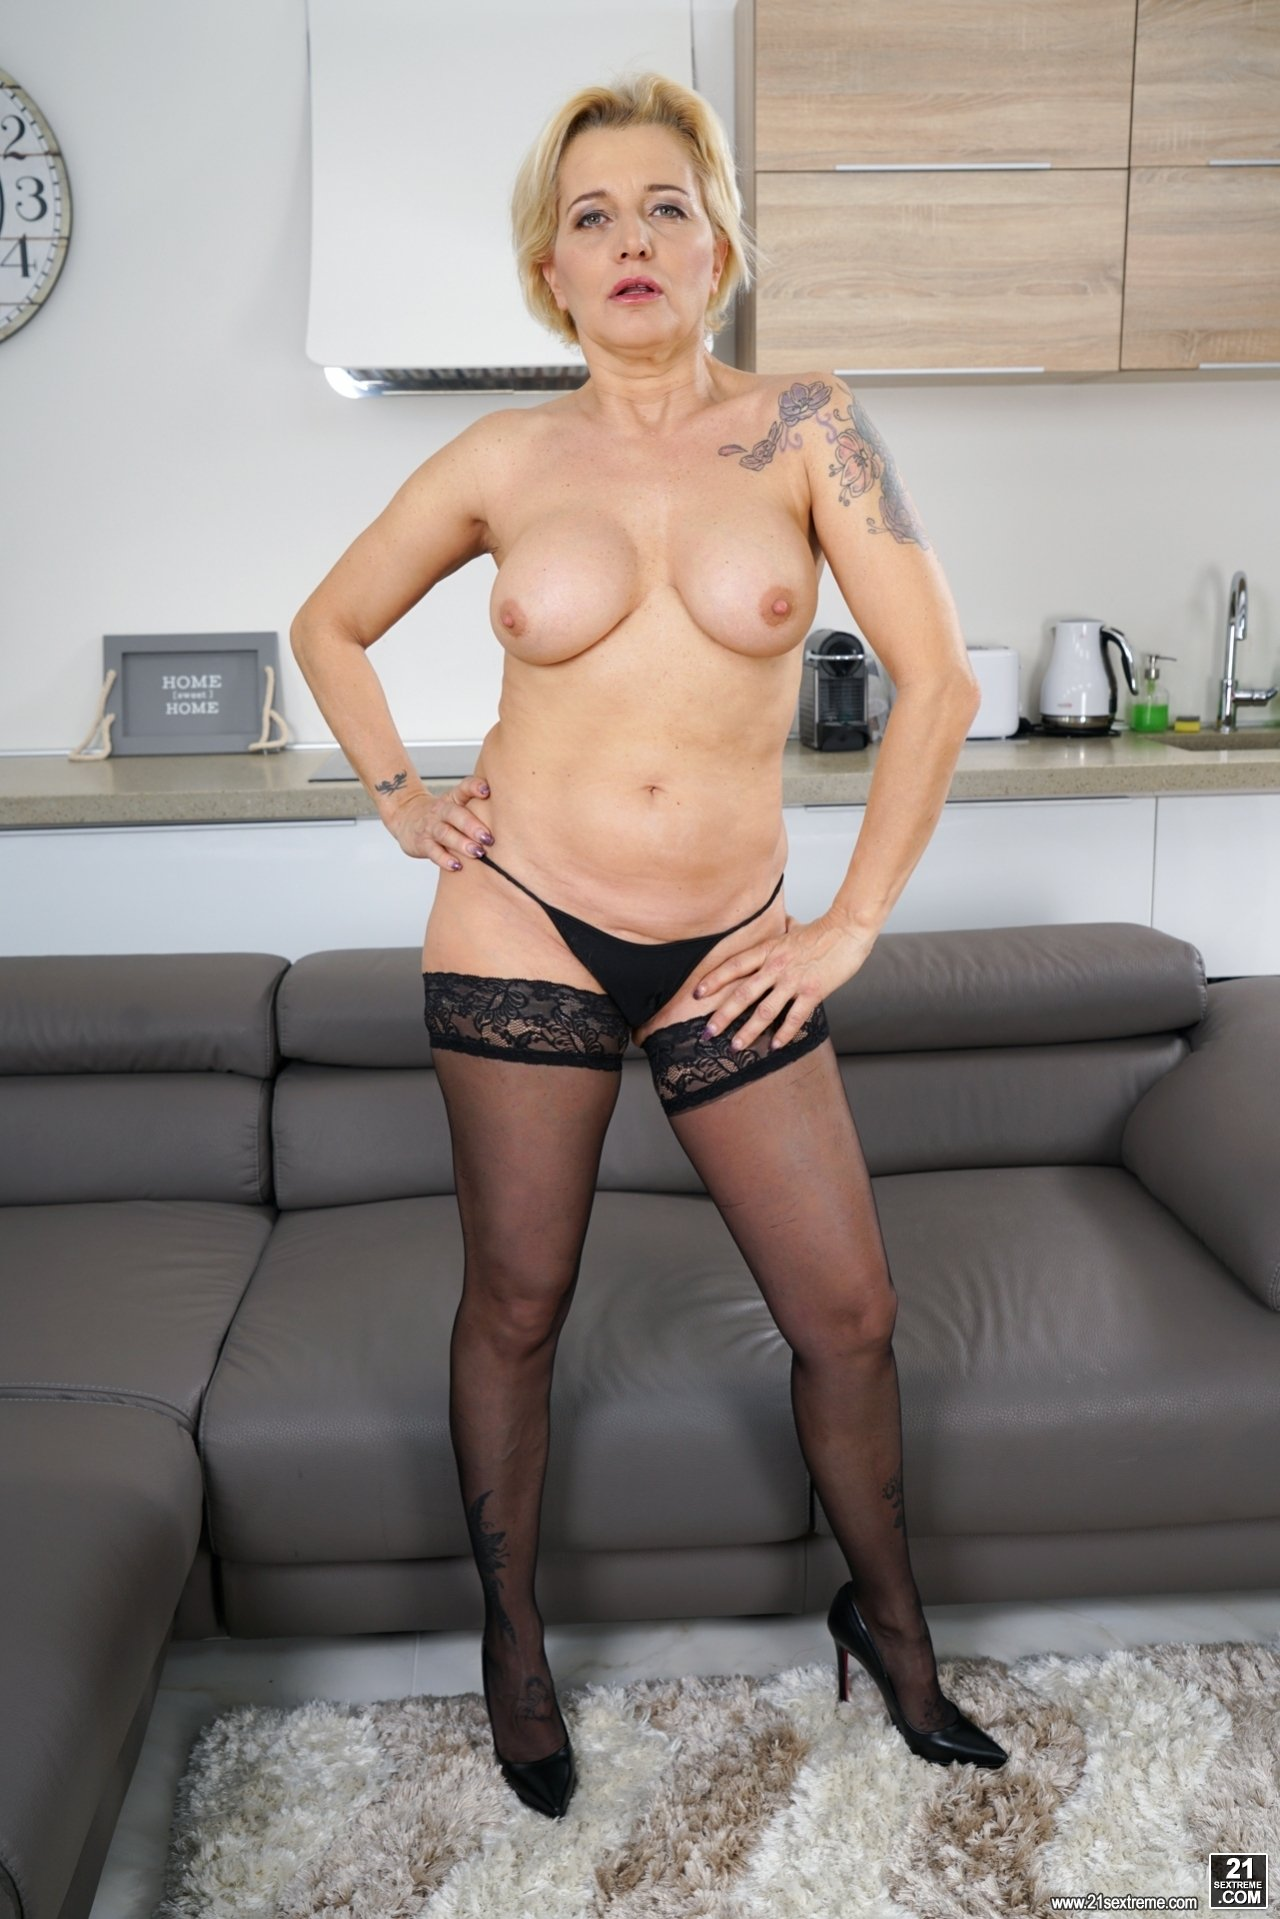 Housewife sex vk #1